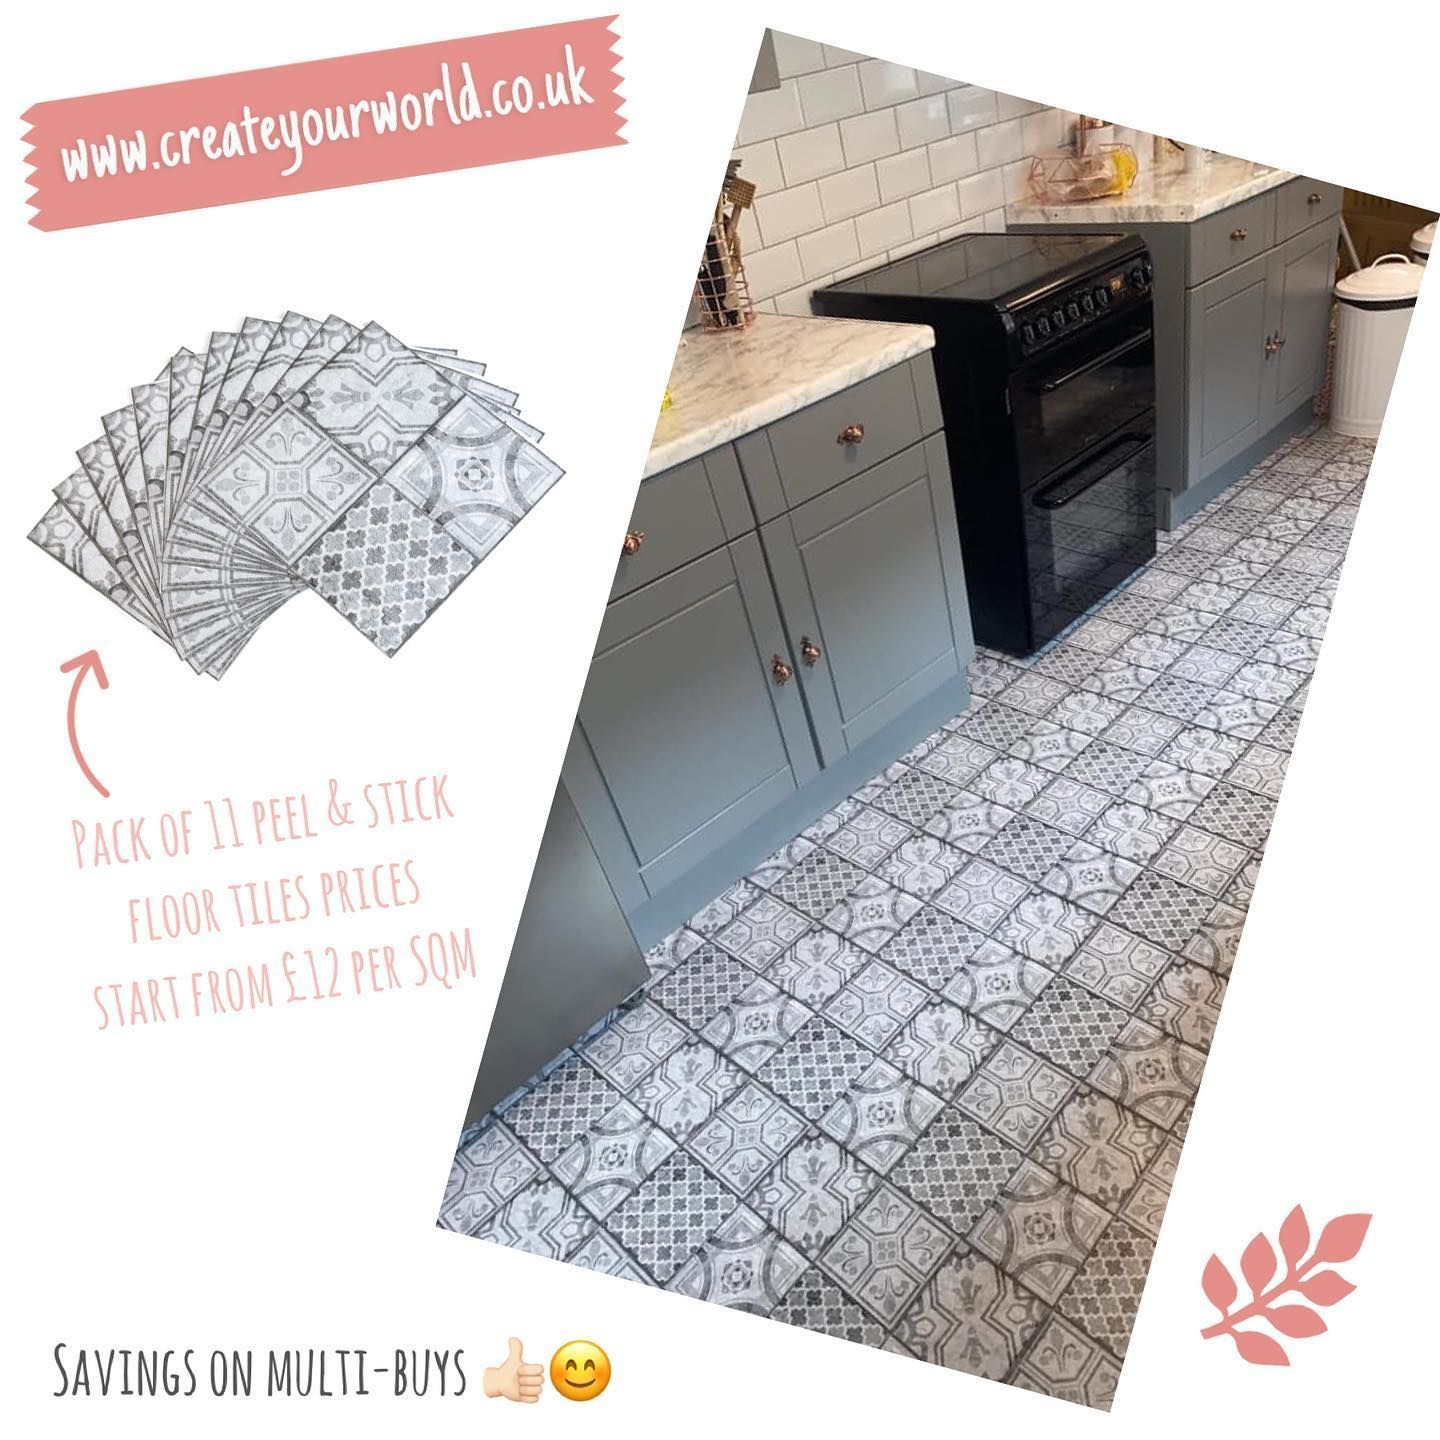 Lauren Jade Firth made a good choice for her new floor using our Moroccan Grey floor tiles, easy peel and stick solution, hardly any DIY skills necessary! 👌🏻 . . . . . #vinyl #renovation #lantaikayu #homedecor #flooring #interiordesignermalaysia #woodfloor #oakflooring #kitchenremodel #lvtflooring #interiorrumahminimalis #lantaivinyl #flooring skirting #wallpaneling #vinylcollection #peelandstickflooring #flooringexperts #interior #inspirasirumahidaman #kitchenfloor #floor #spcfloor #dekorasir